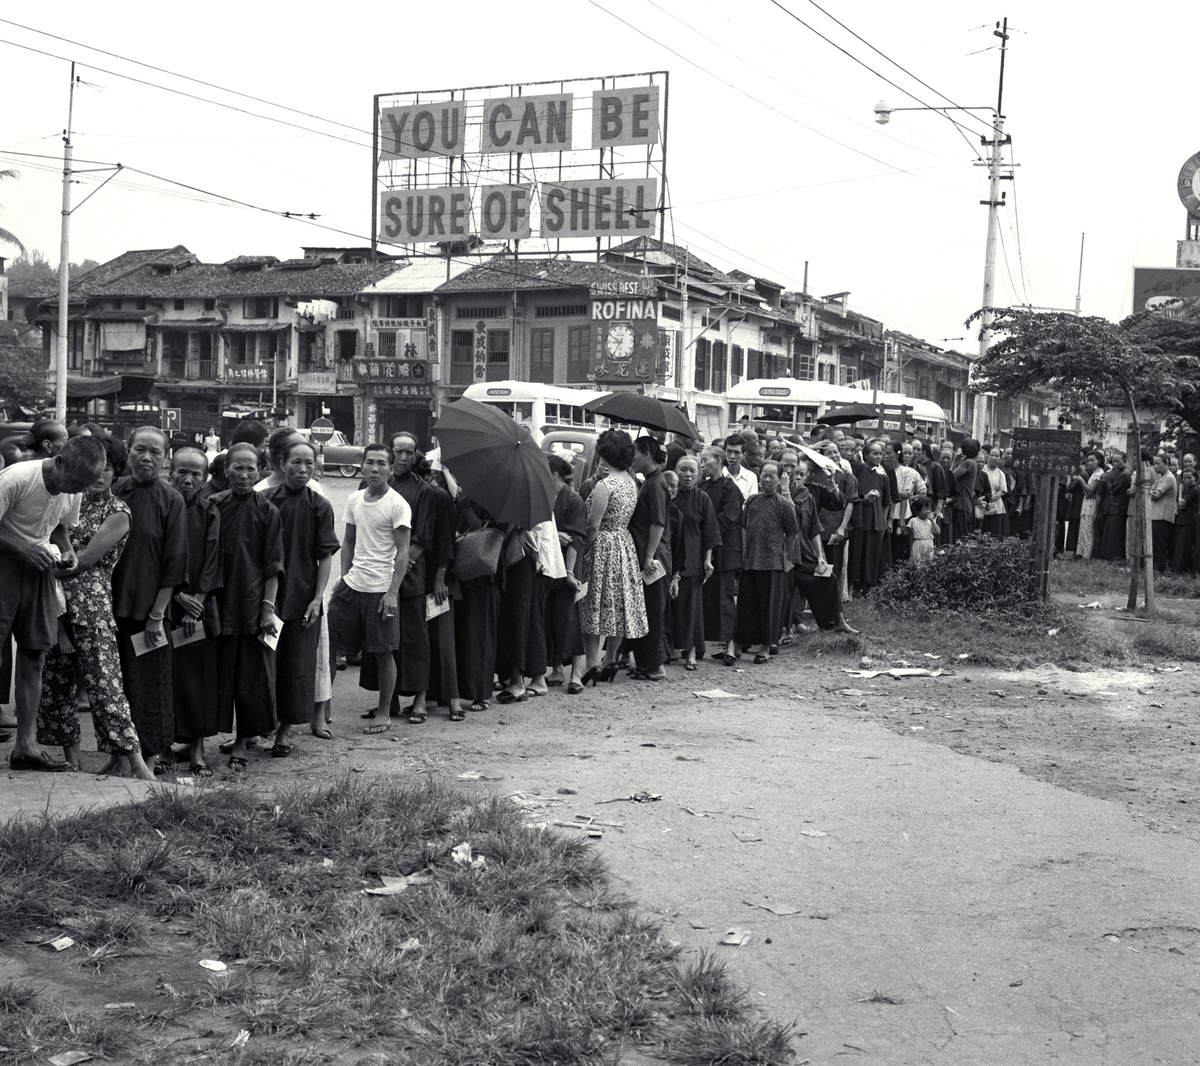 People waiting to cast their vote, 30 May 1959 - New Naratif